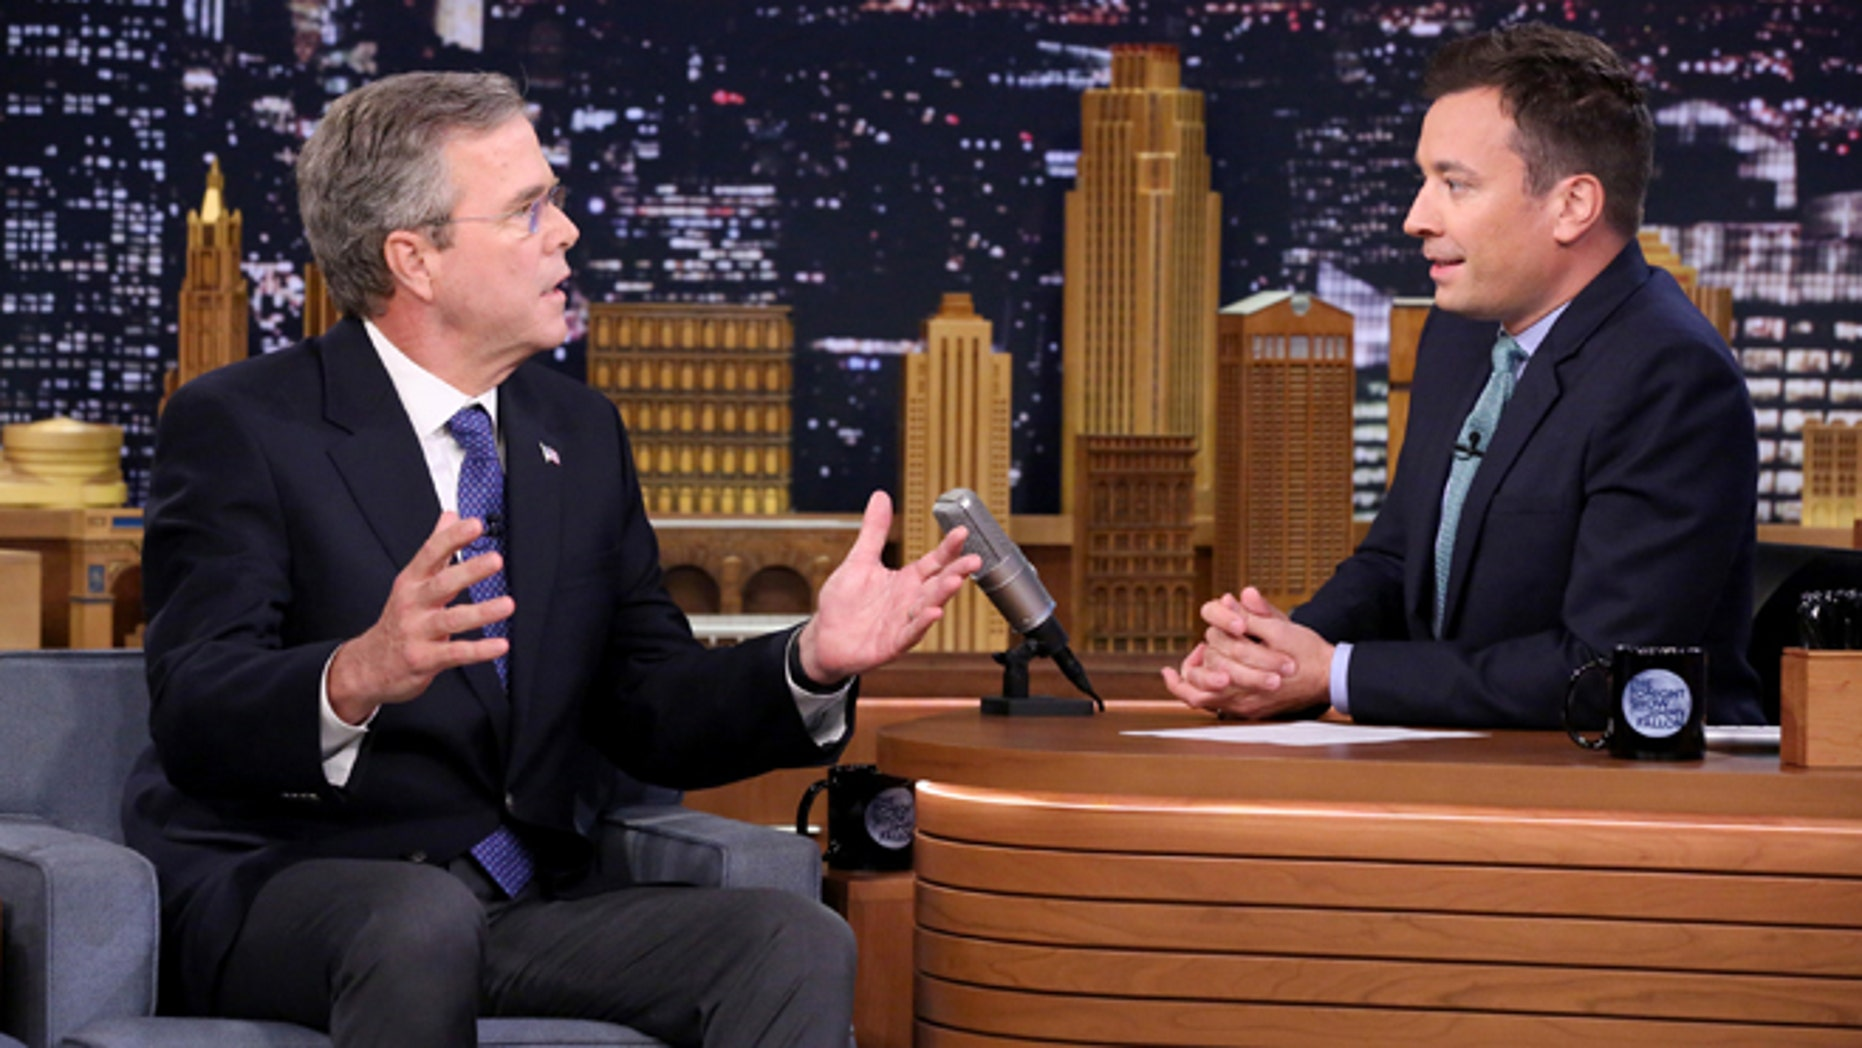 """Former Governor Jeb Bush, left, the new Republican presidential candidate, speaks during an interview with host Jimmy Fallon on """"The Tonight Show Starring Jimmy Fallon,"""" Tuesday, June 16, 2015, in New York.  (Douglas Gorenstein/NBC via AP)"""